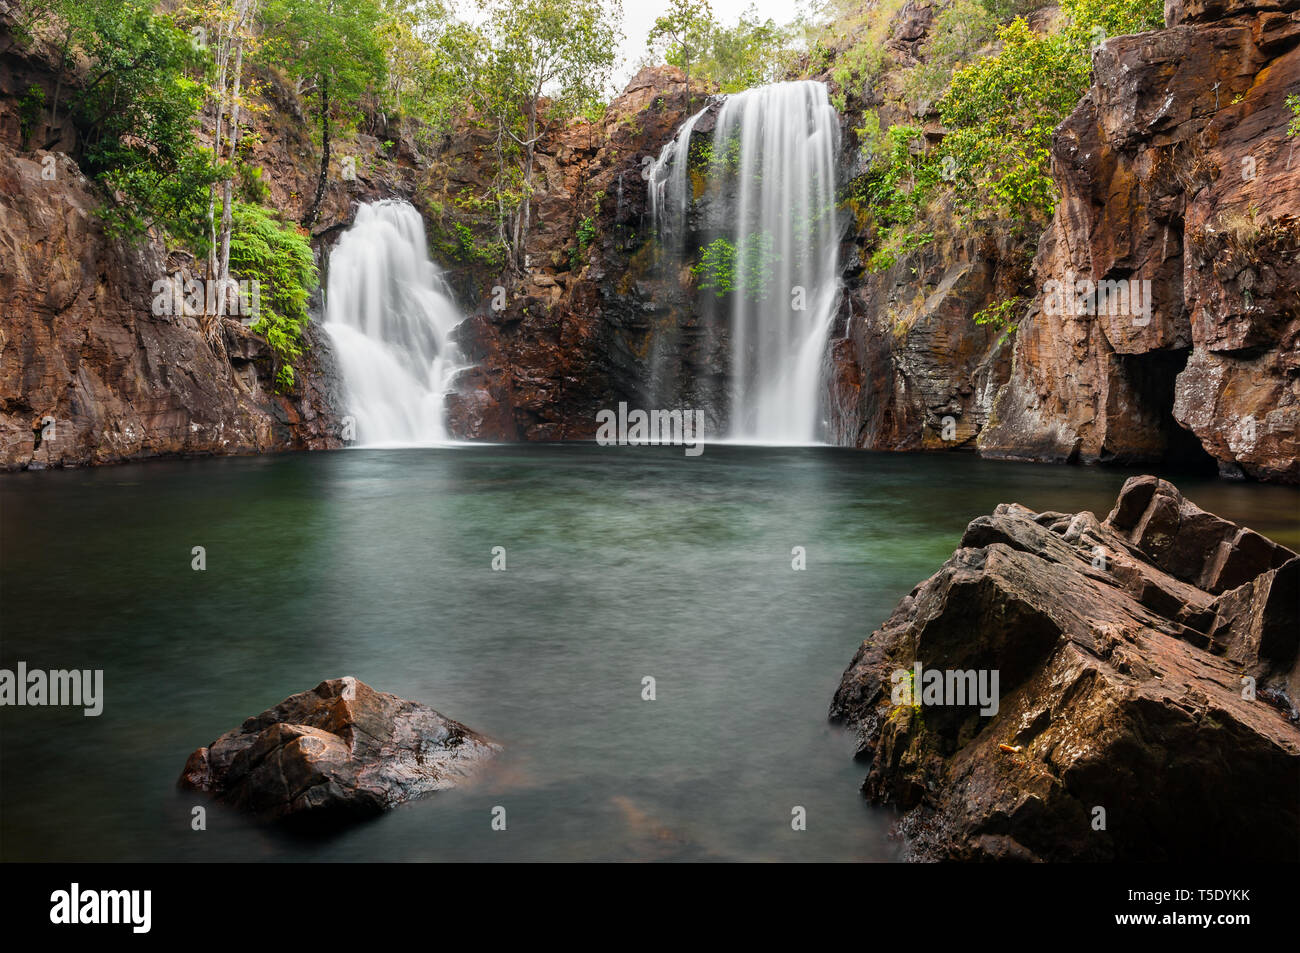 Beautiful Florence Falls in Litchfield NP. - Stock Image